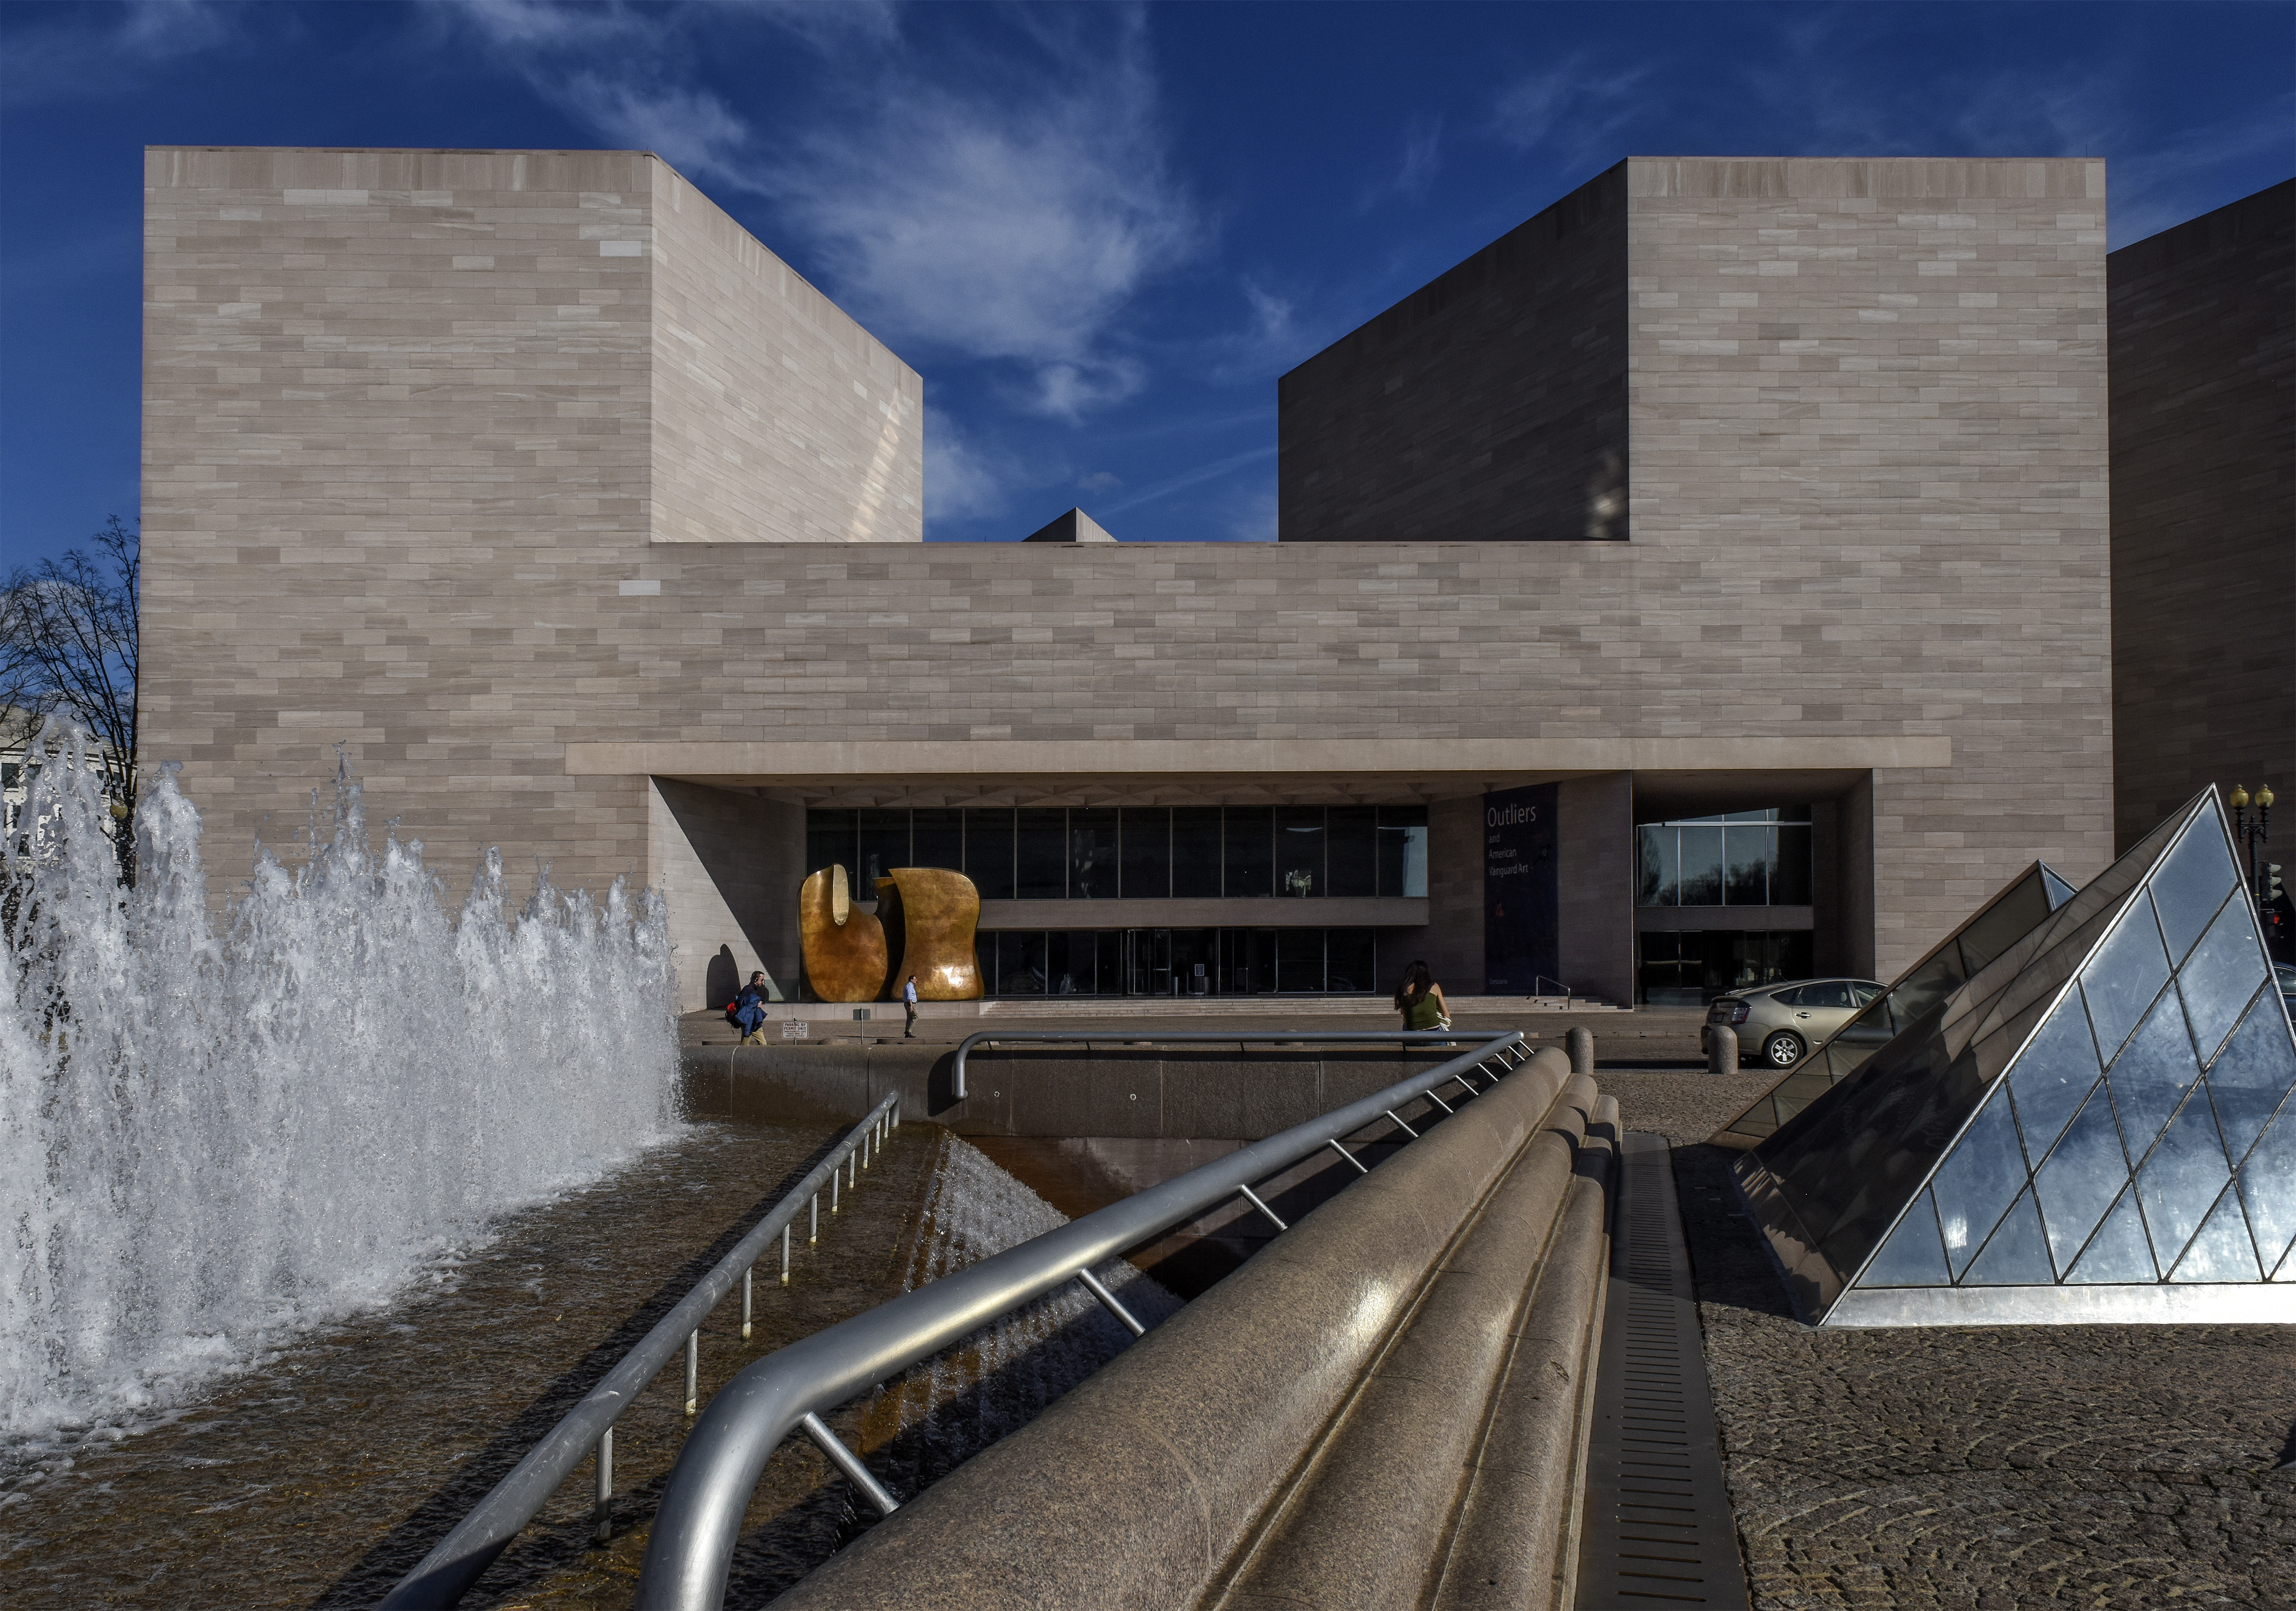 The best way to honor I.M. Pei? Spend some time at the National Gallery of Art.